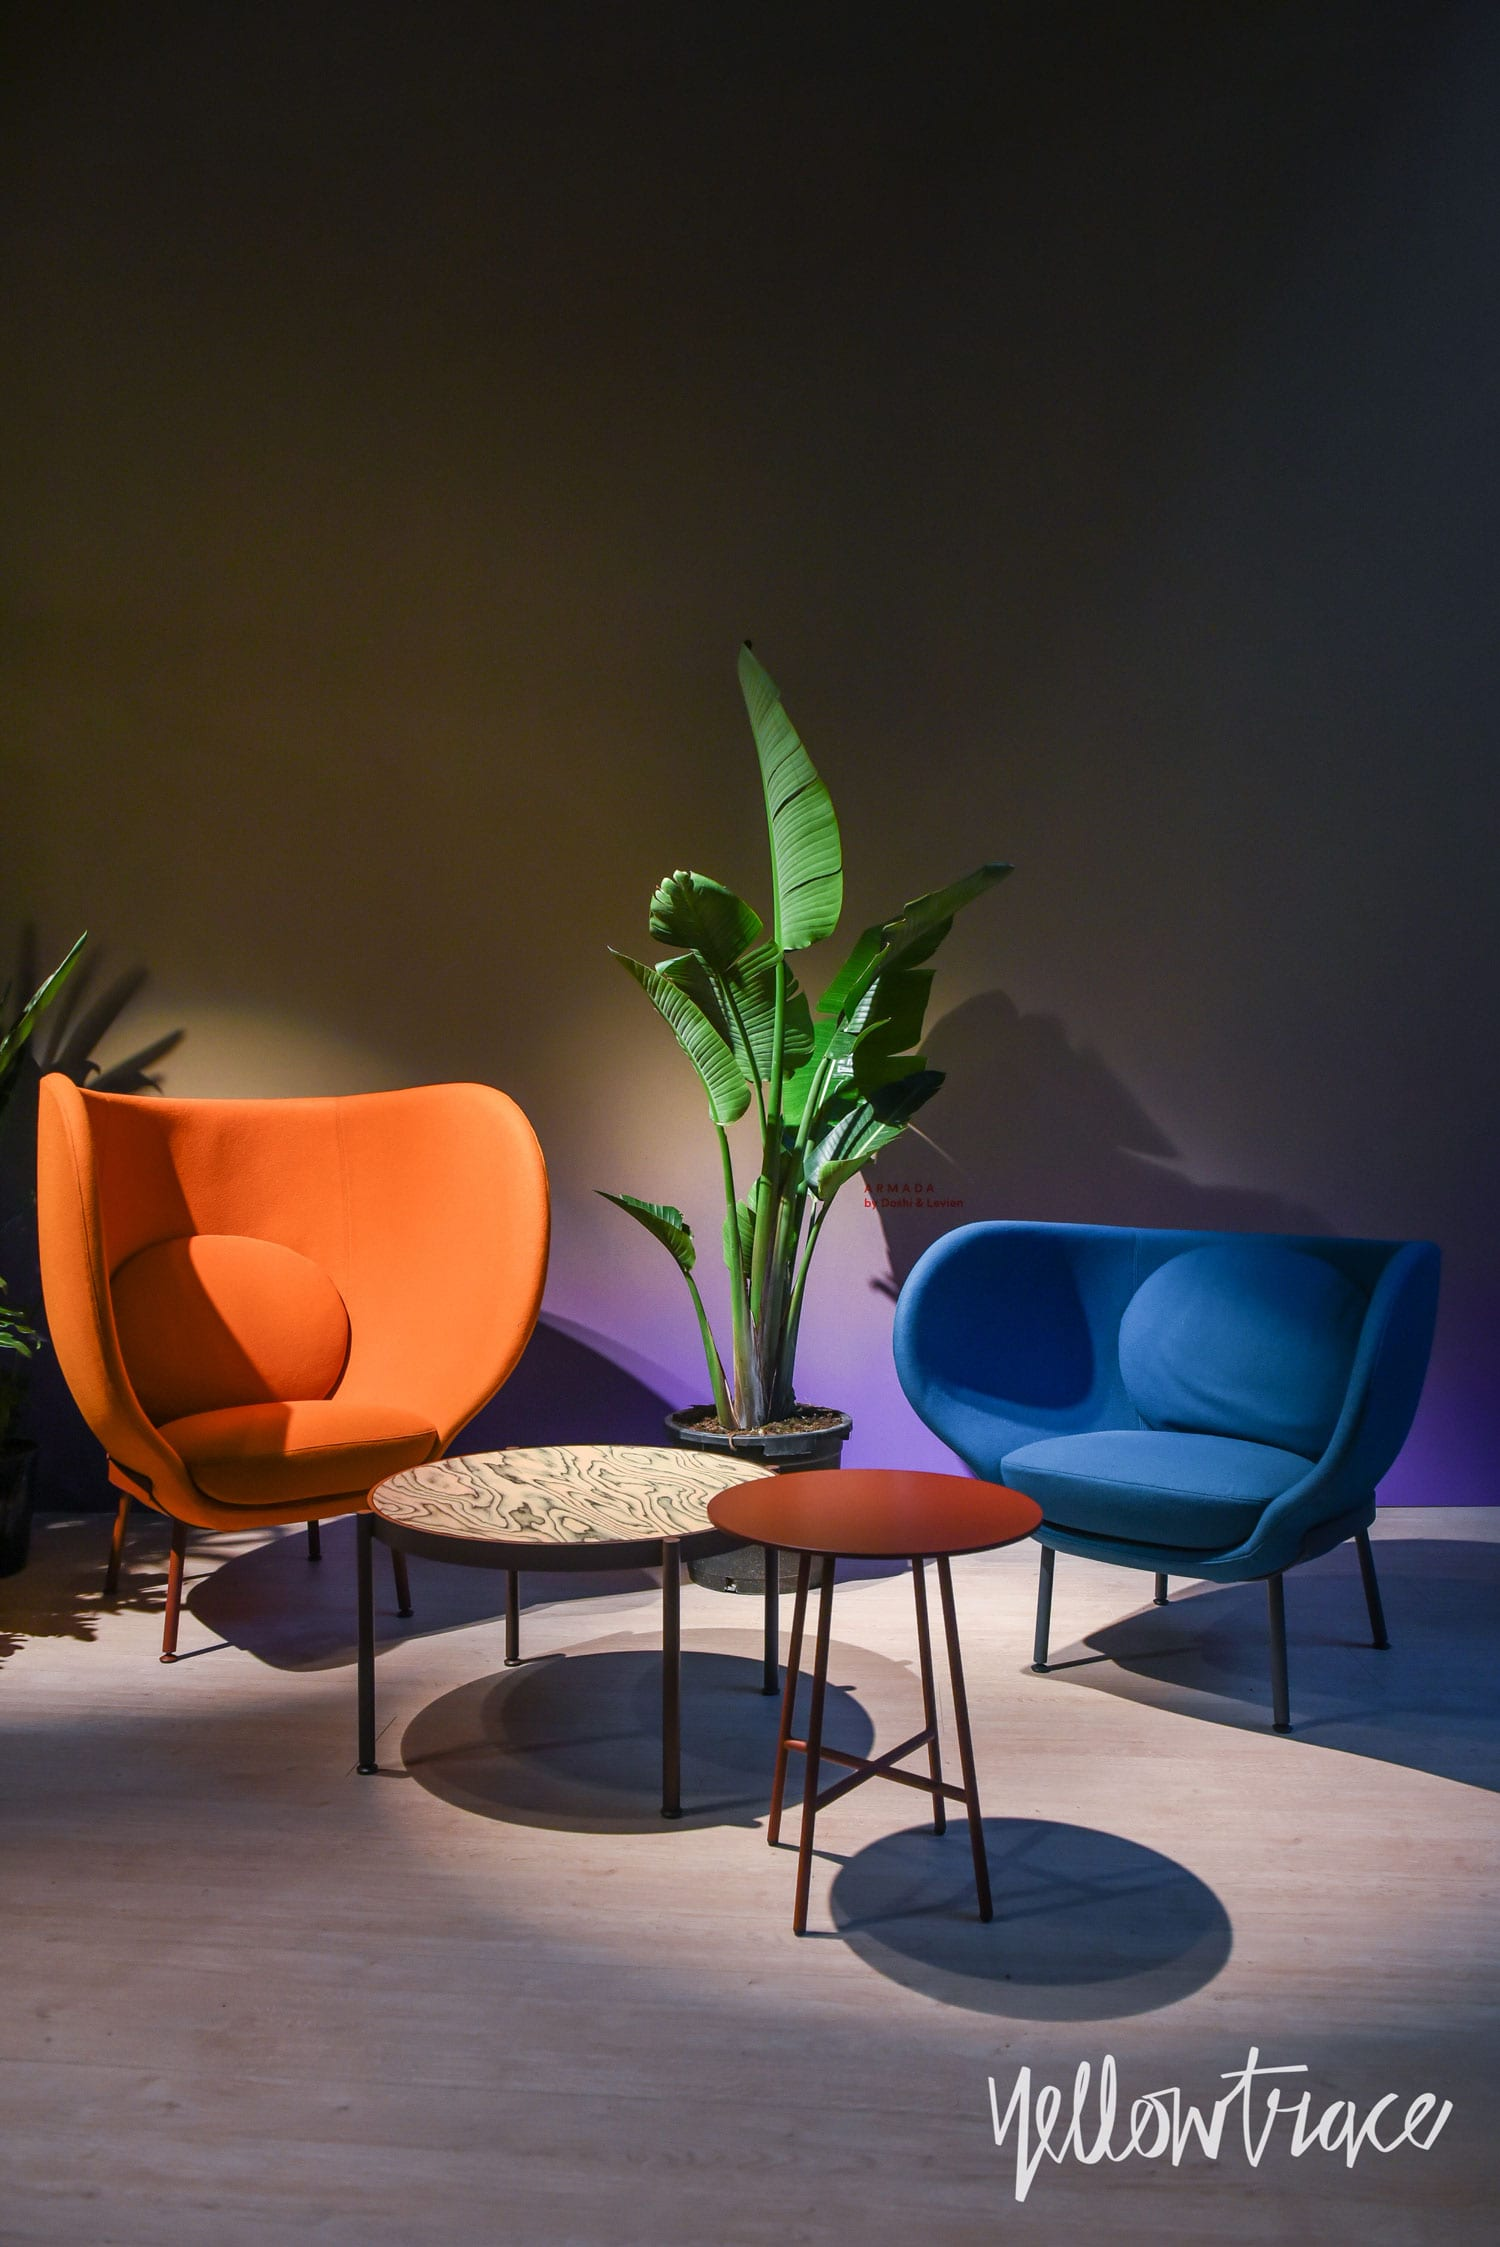 Milan Design Week 2018 Highlights, Moroso Stand at Salone del Mobile 2018. Photo © Nick Hughes | #Milantrace2018